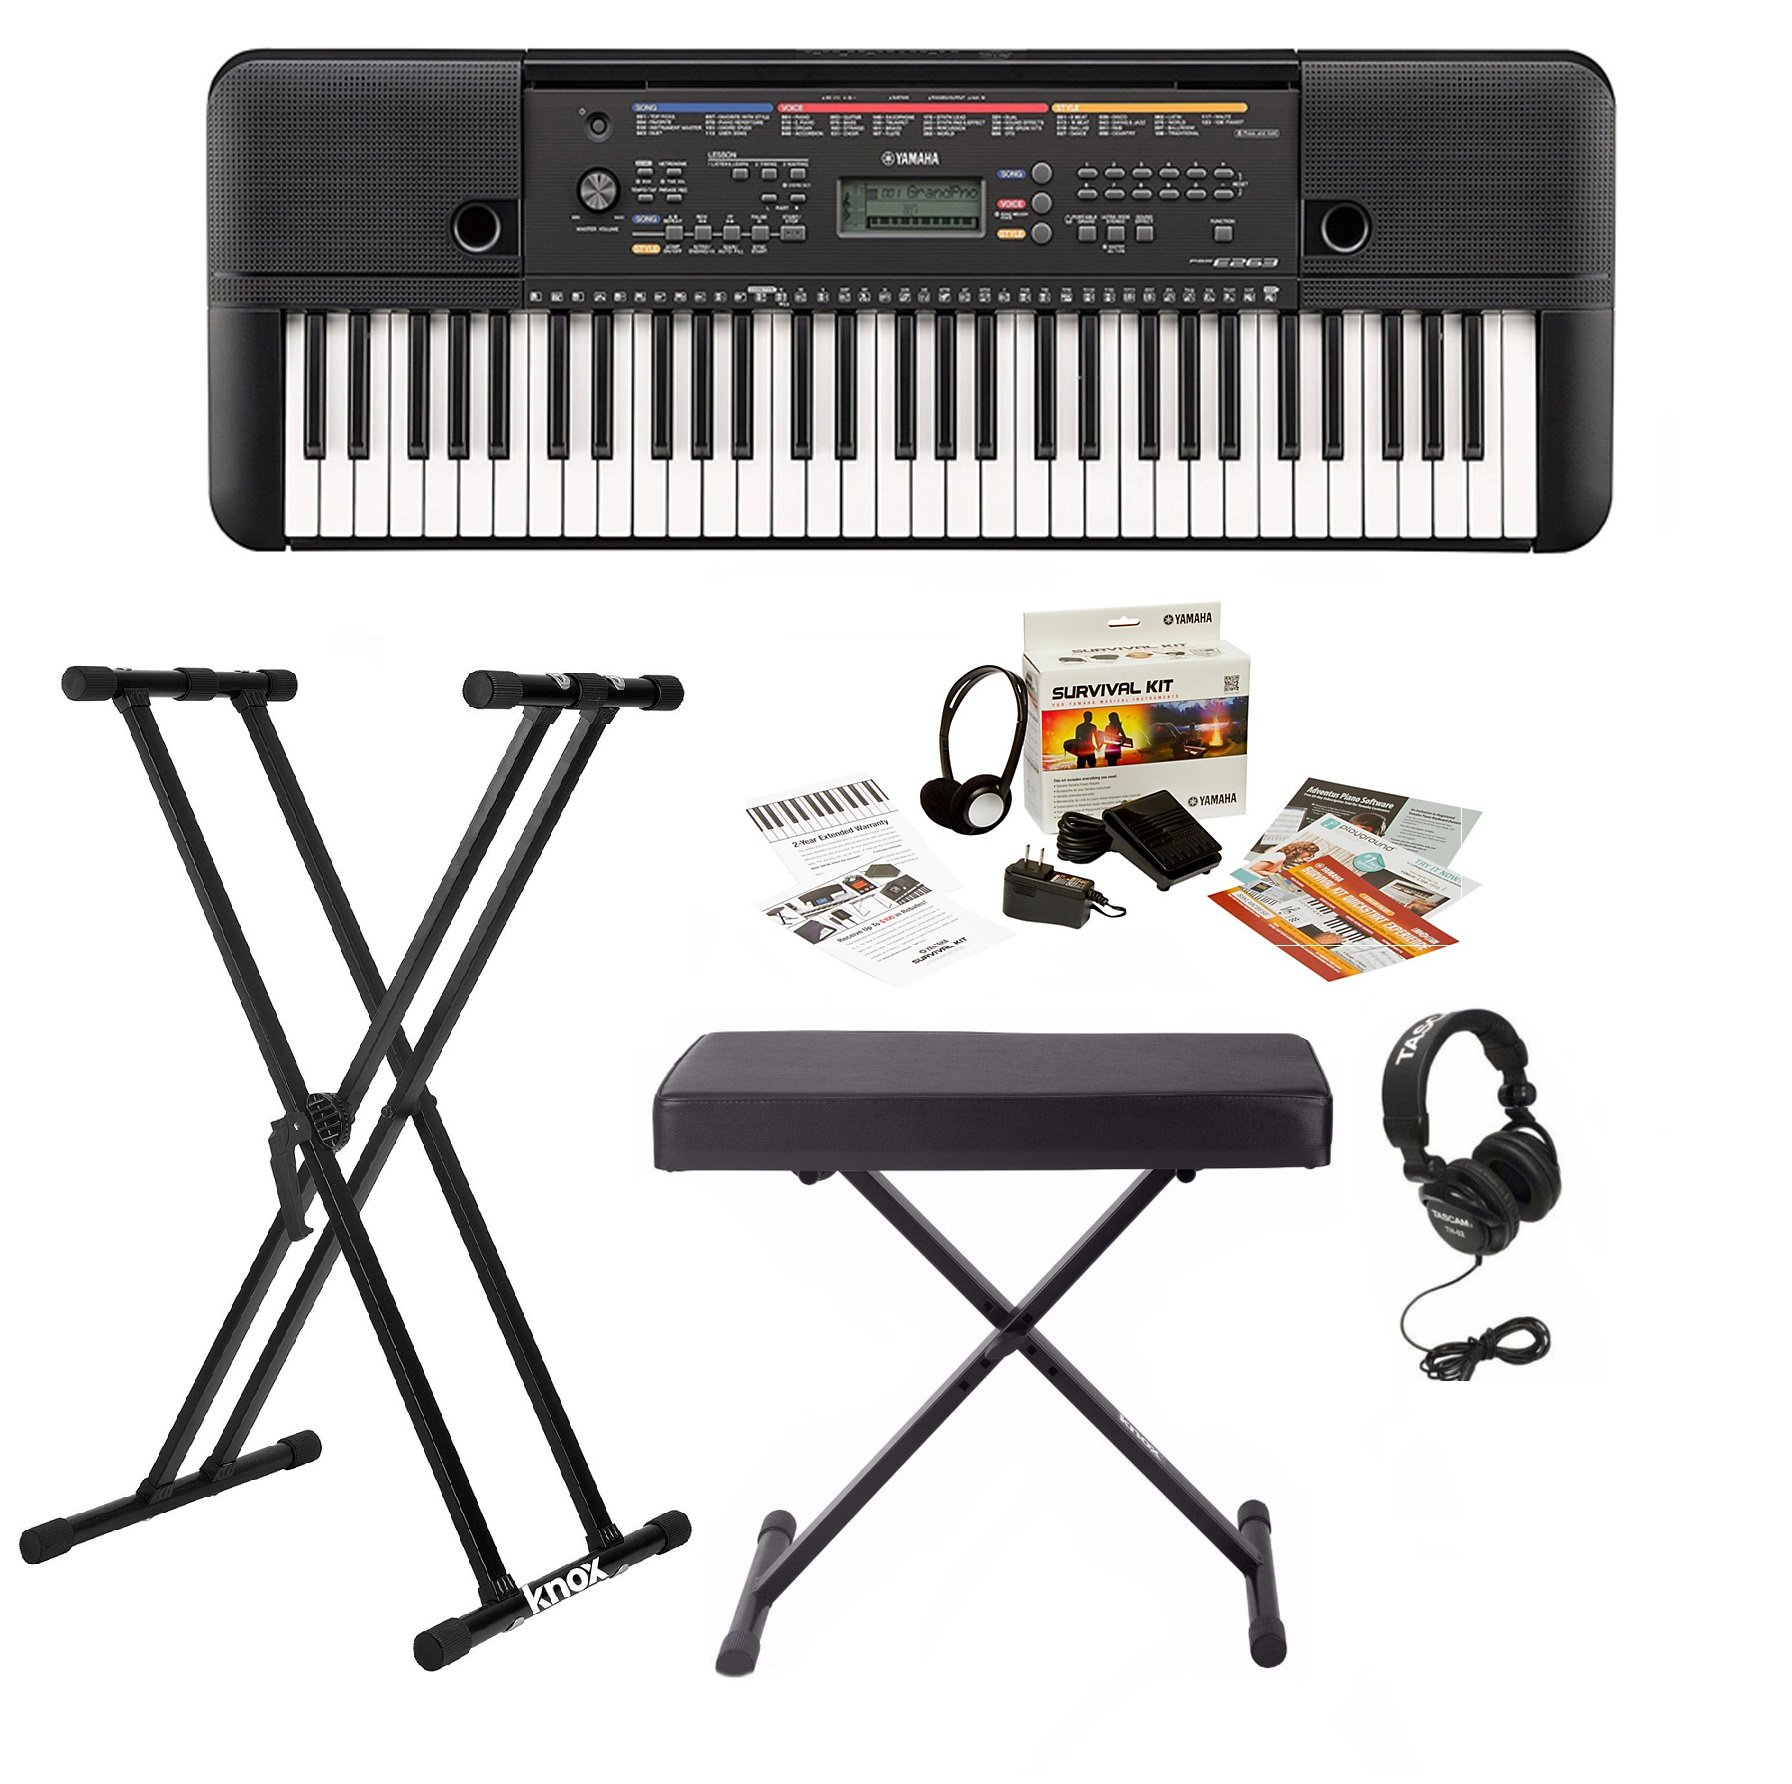 Yamaha PSRE263 Keyboard with Knox Bench, Stand, Headphones, & Survival Kit (includes power supply & 2 year warranty)